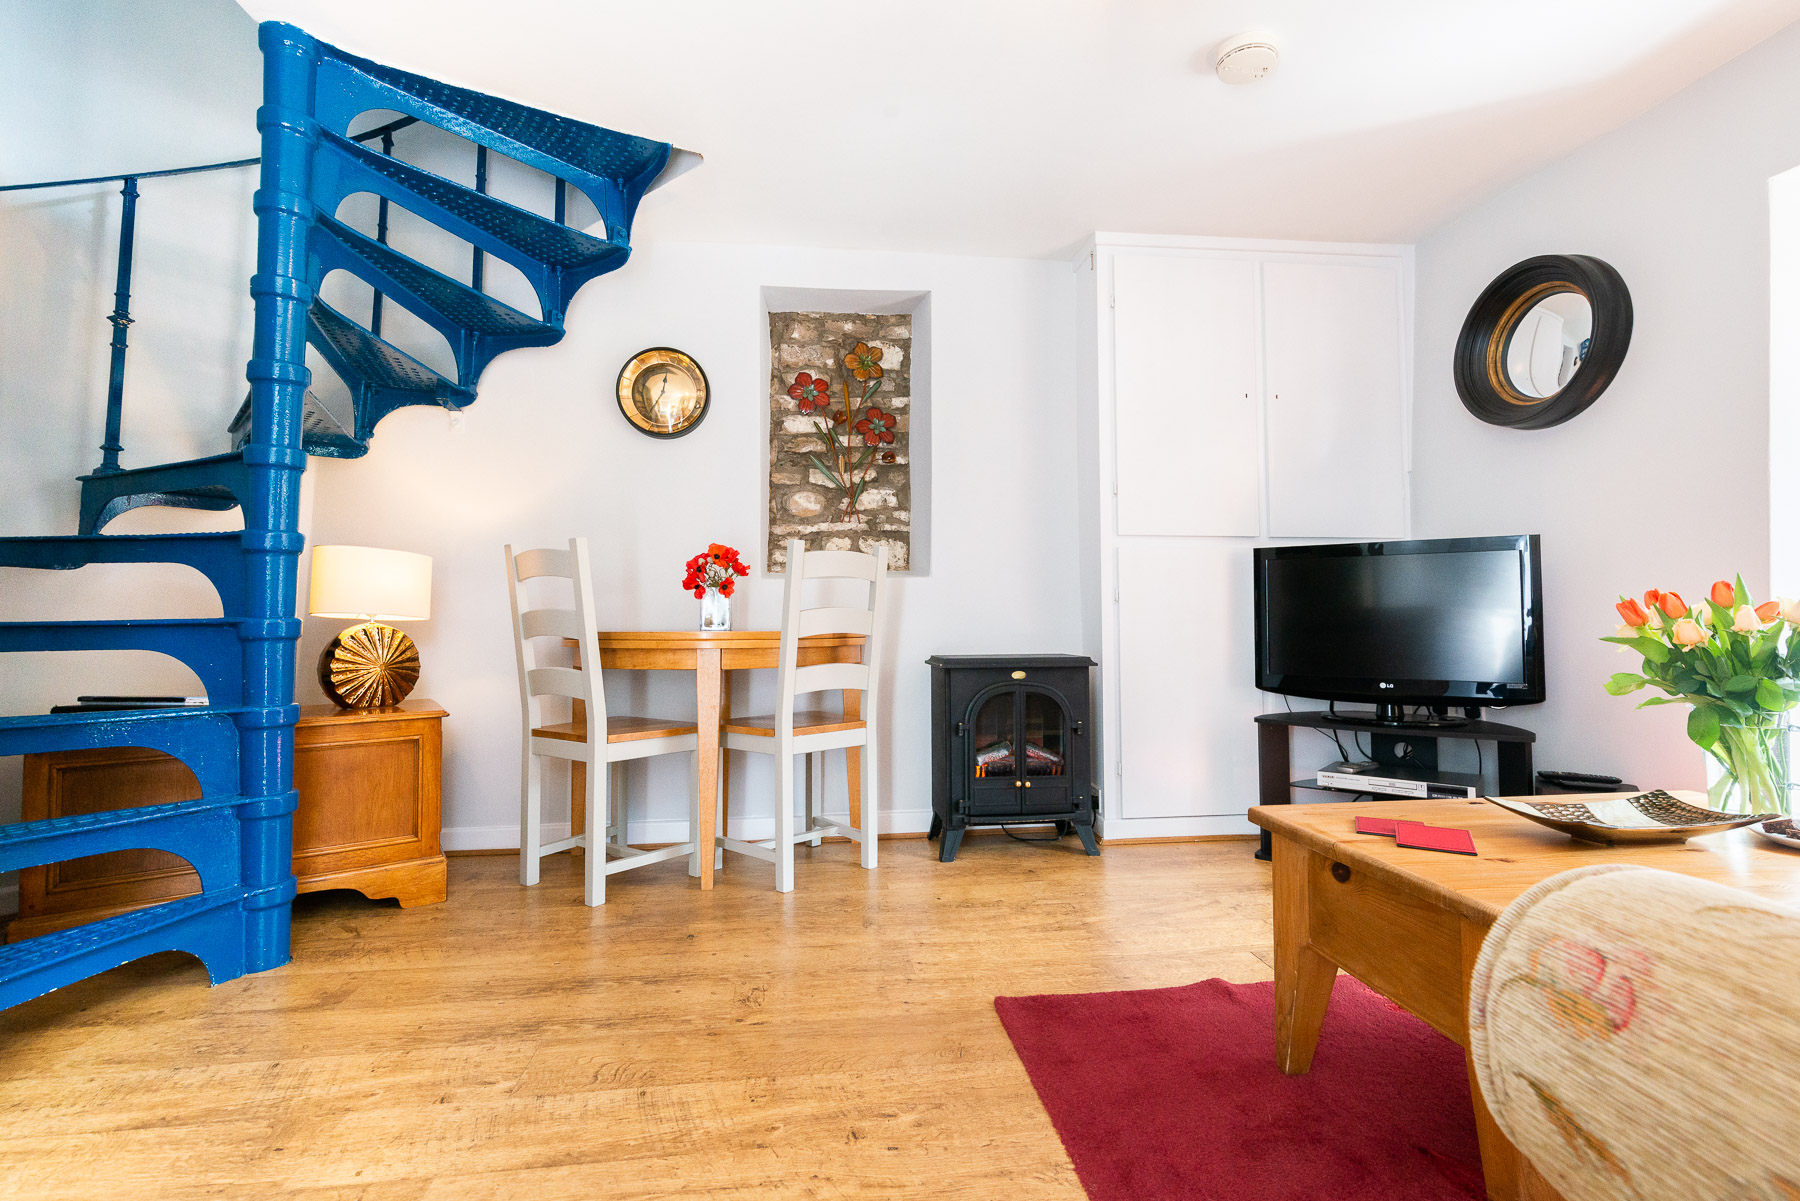 Courtyard Cottage Lounge with spiral stairs. A pet friendly holiday cottage.